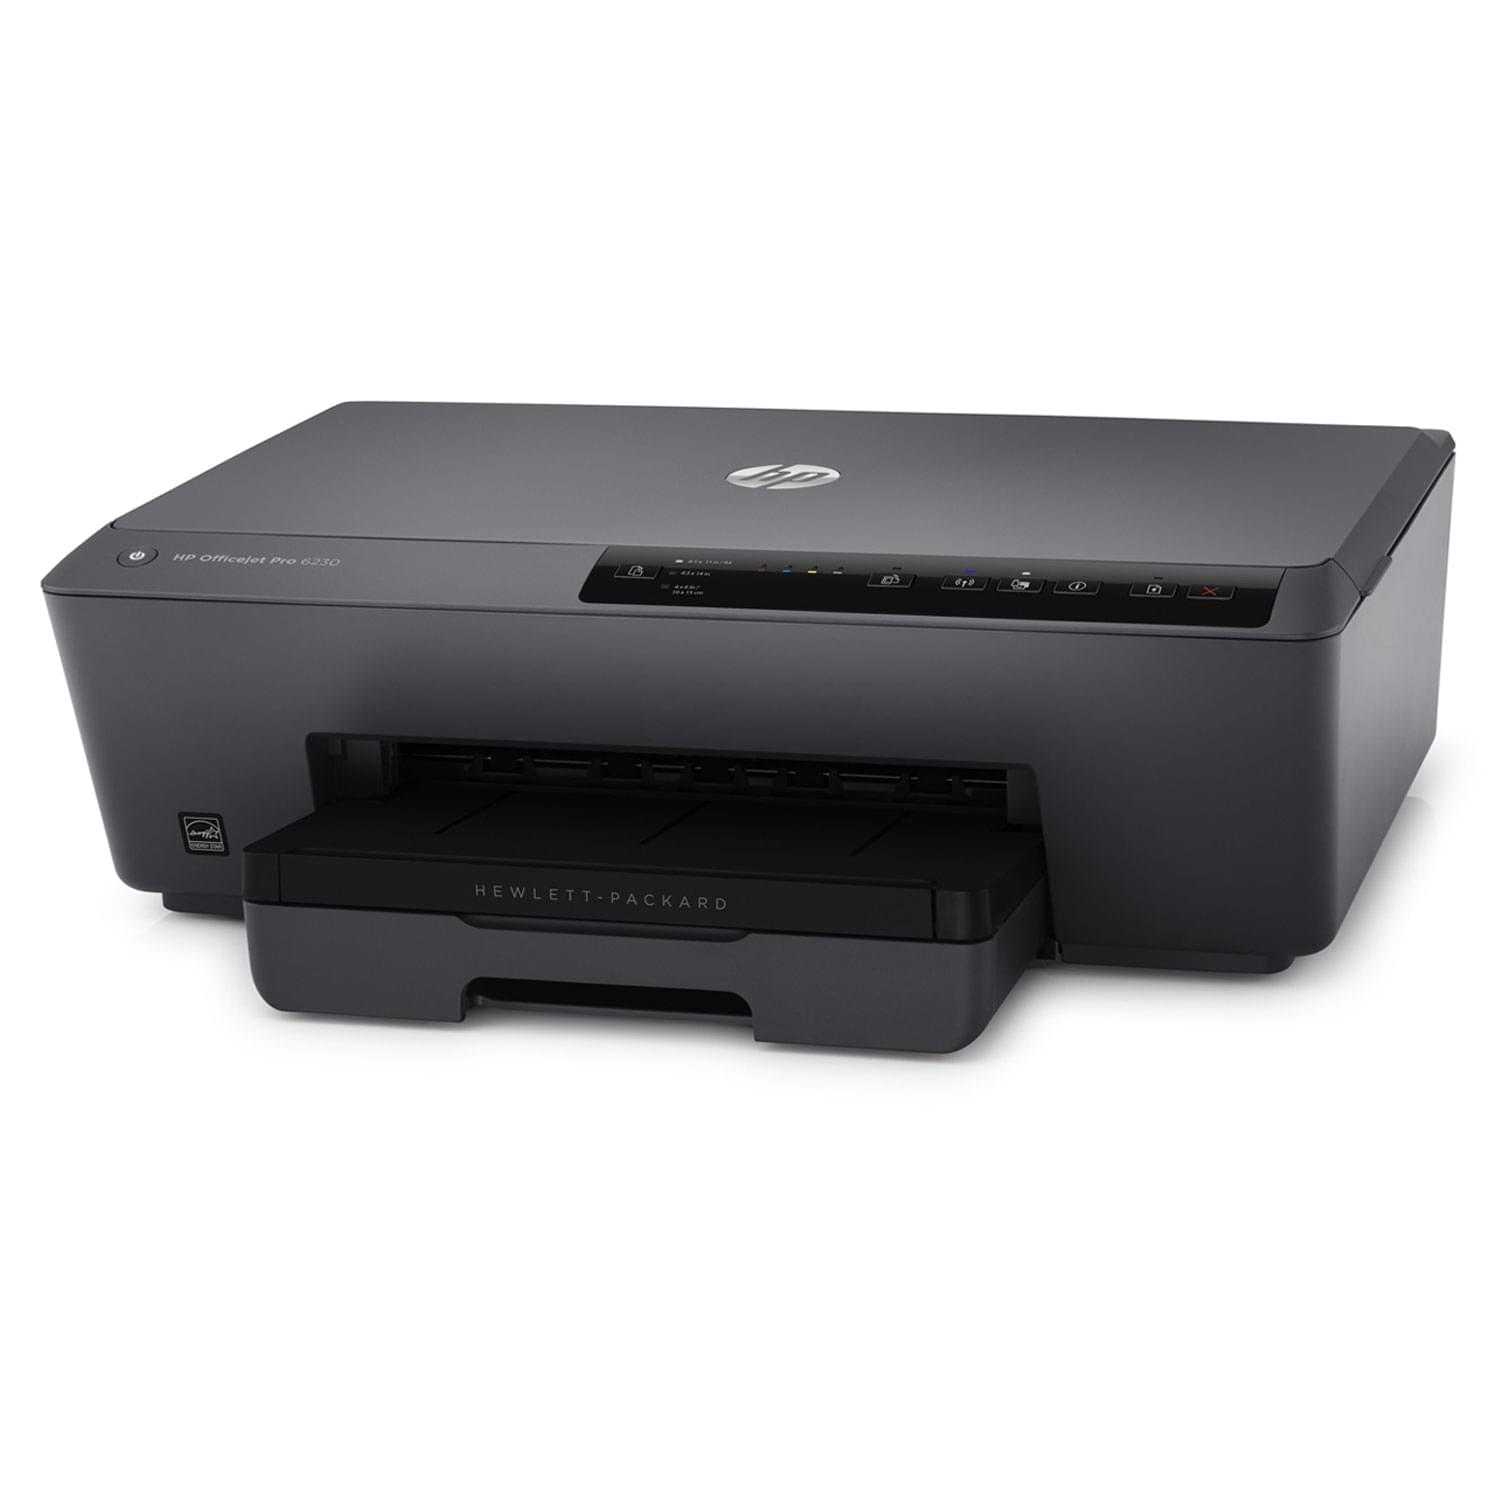 Imprimante jet d'encre HP couleur wifi - OfficeJet Pro 6230 ePrinter - 0